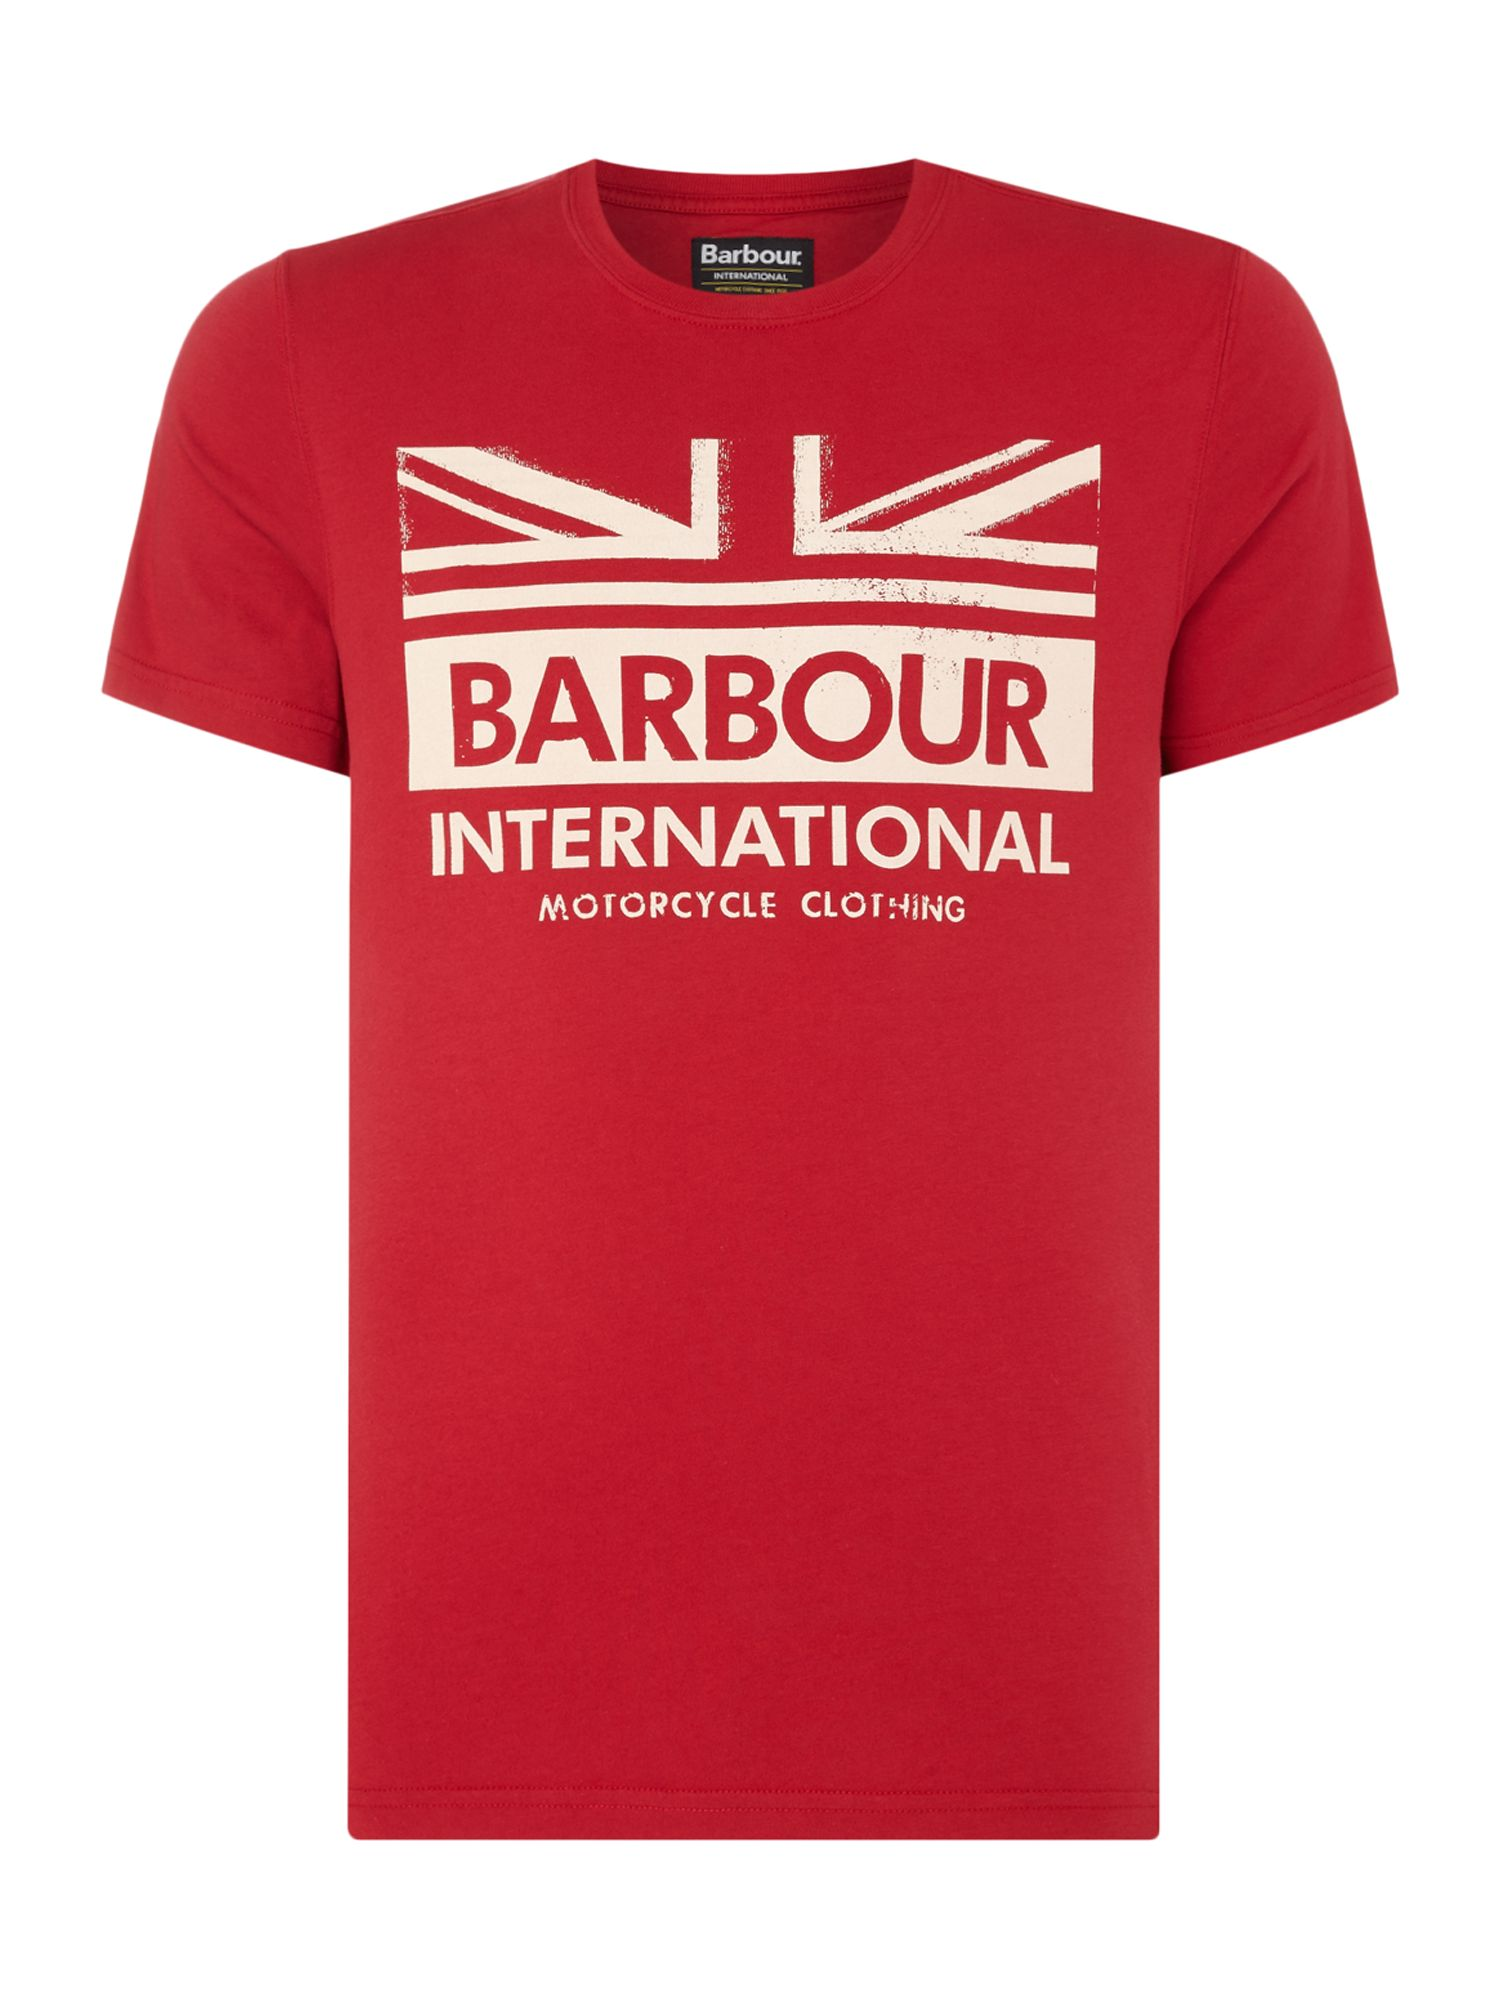 Men's Barbour One colour union jack print t-shirt, Red